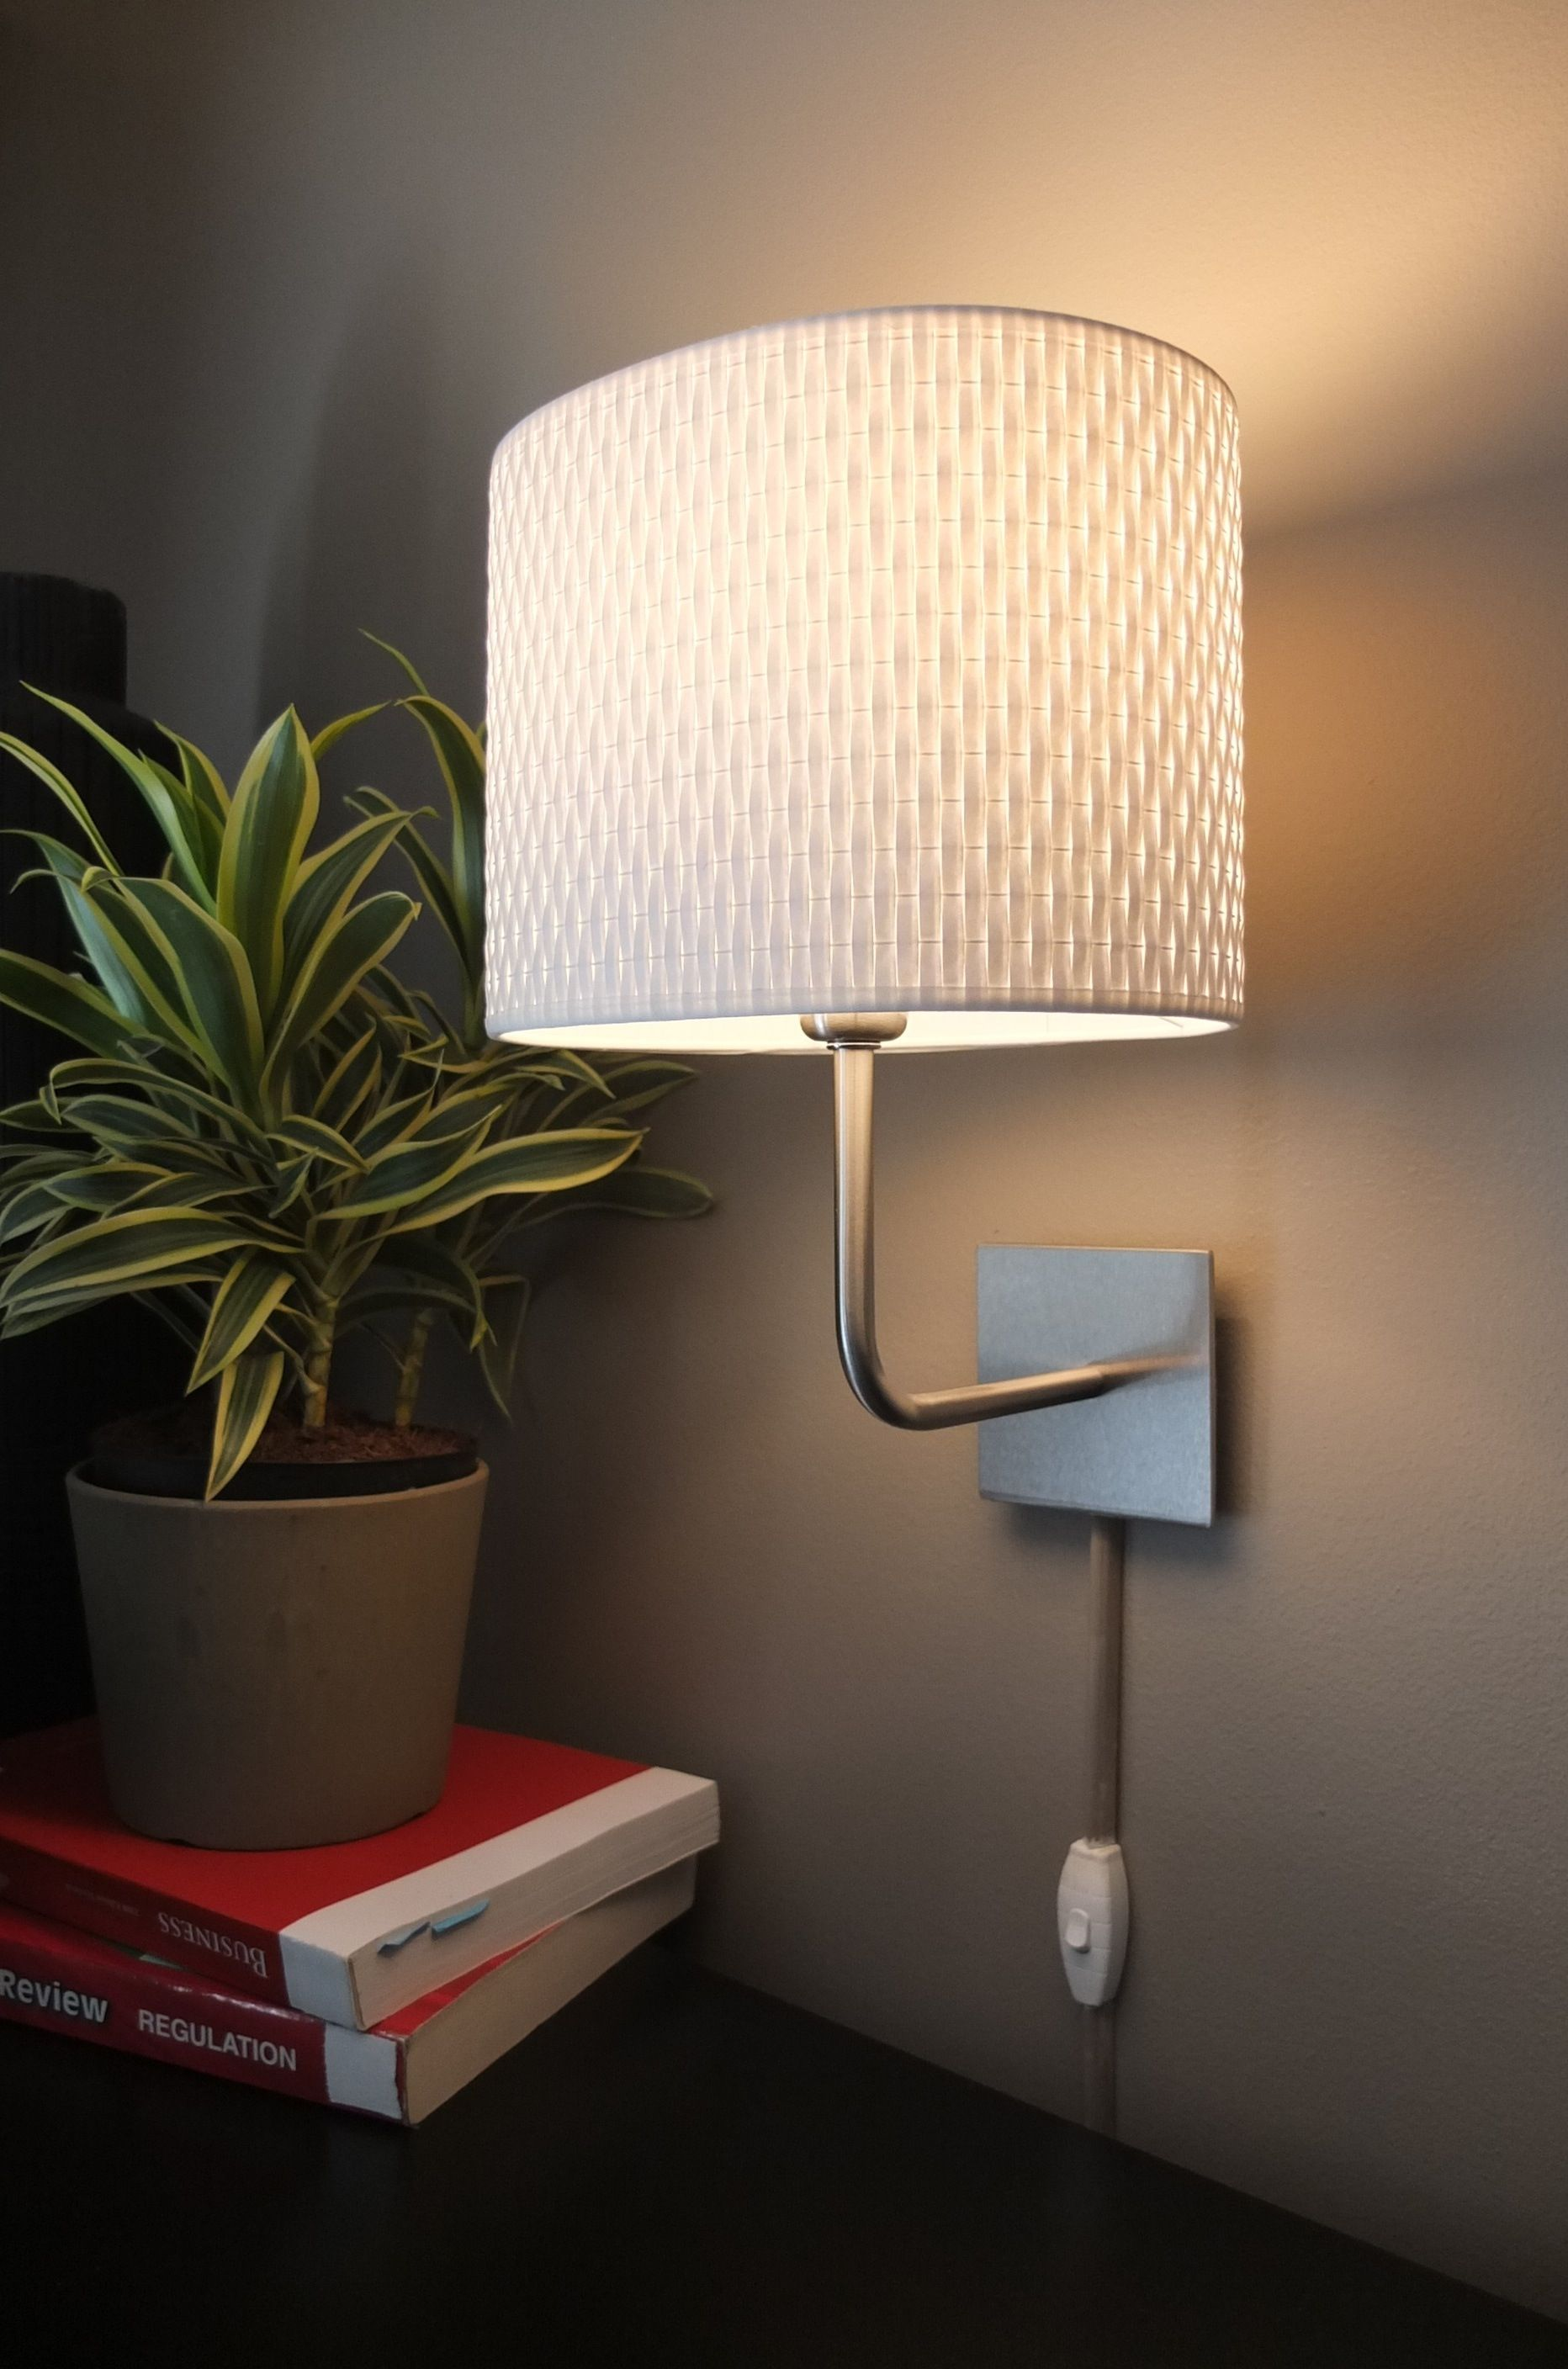 Wall mounted IKEA lamps are an easy way